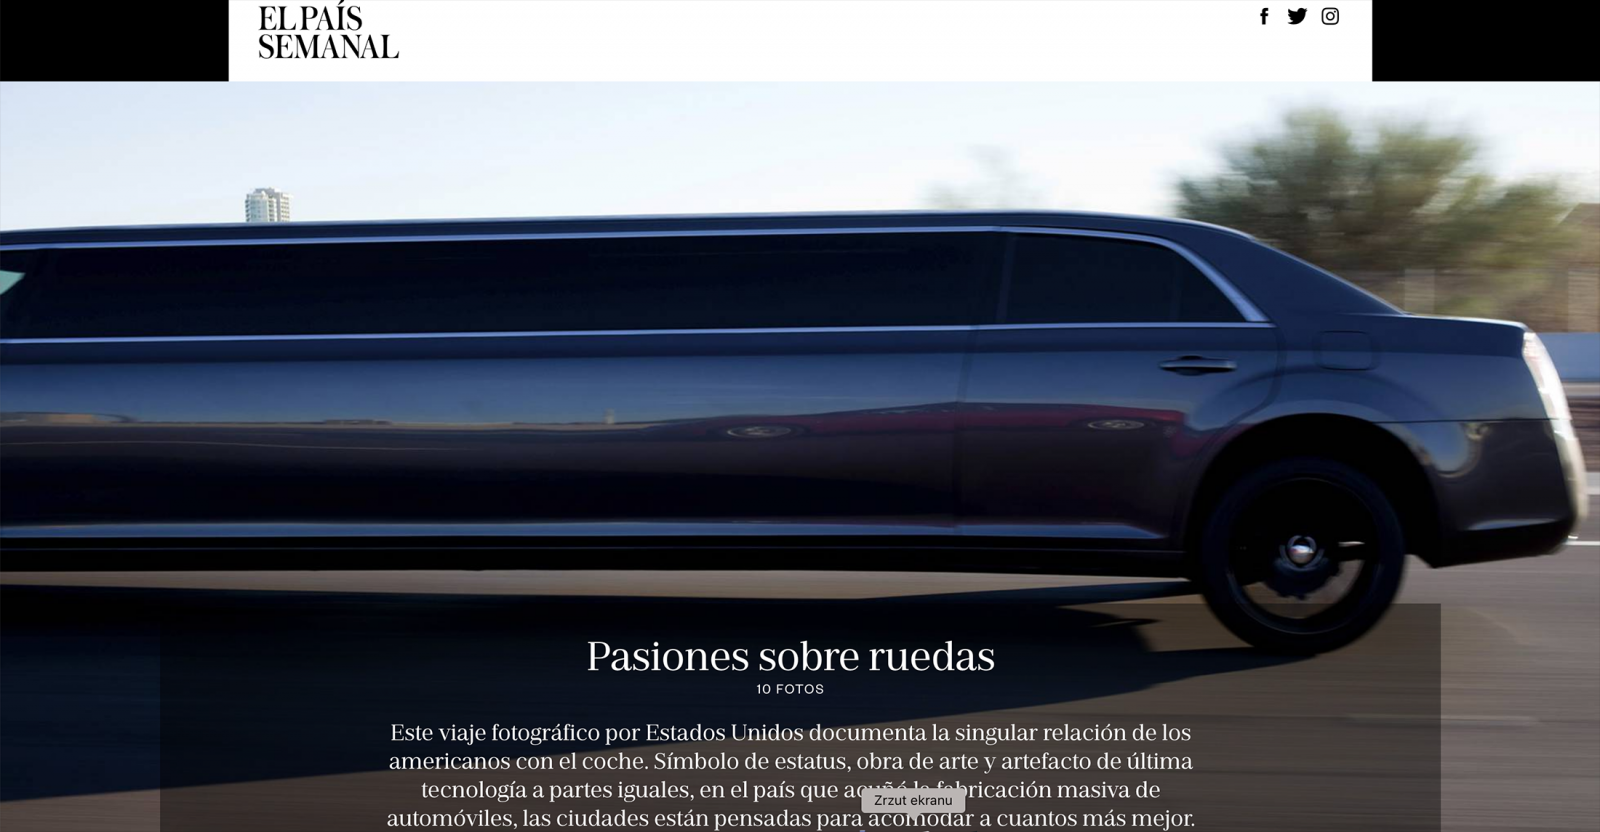 Photography image - Loading 201812__El_Pais_Automobile_America.png